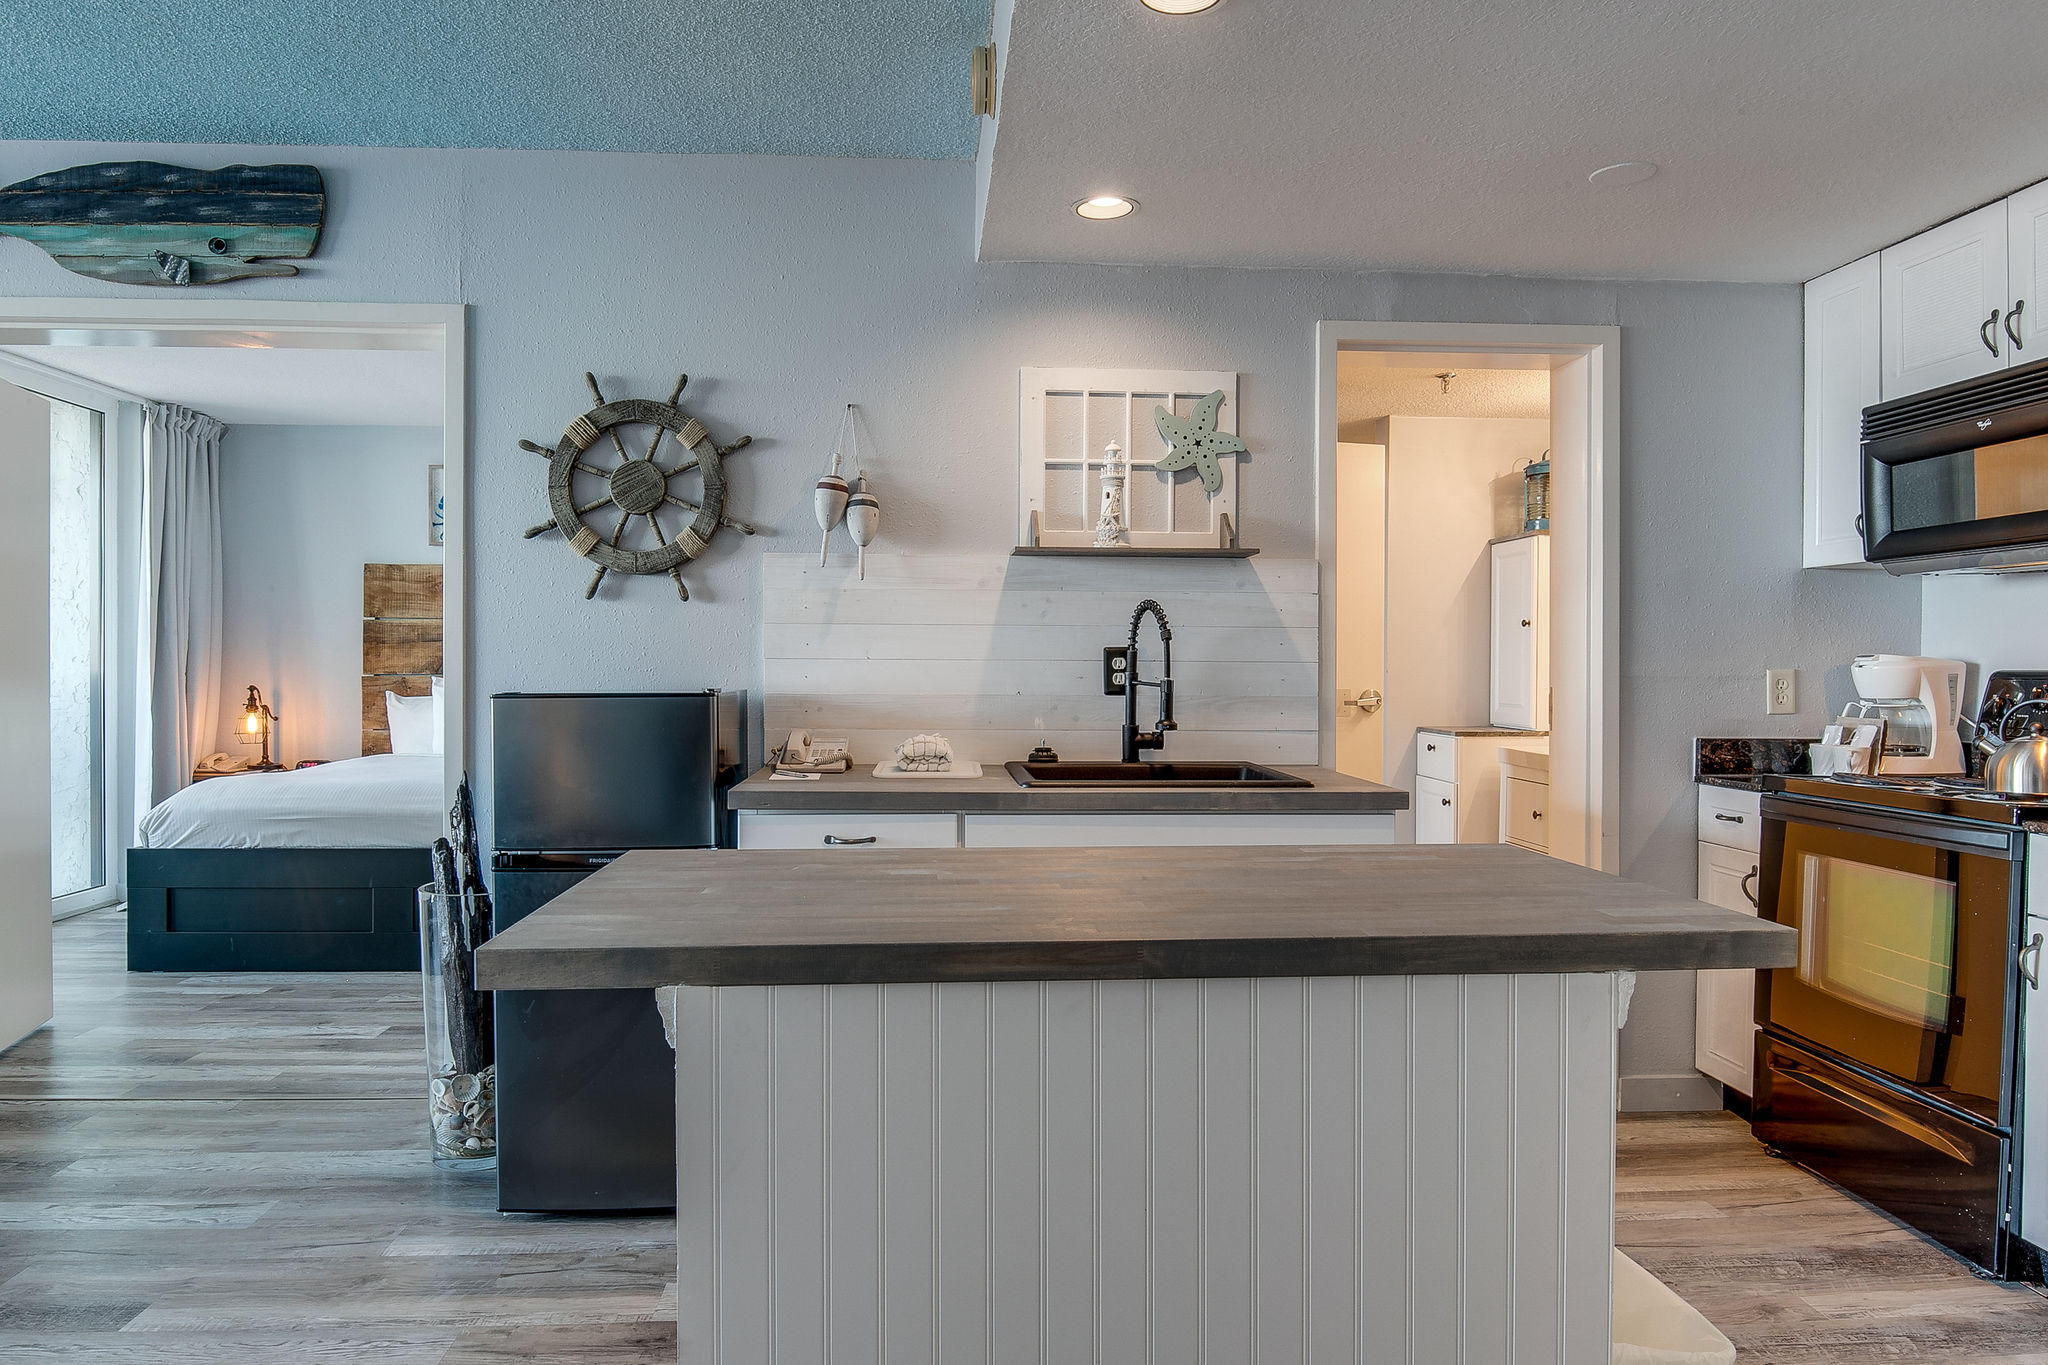 This completely renovated top floor unit has amazing Choctawhatchee Bay views. The one bedroom condo